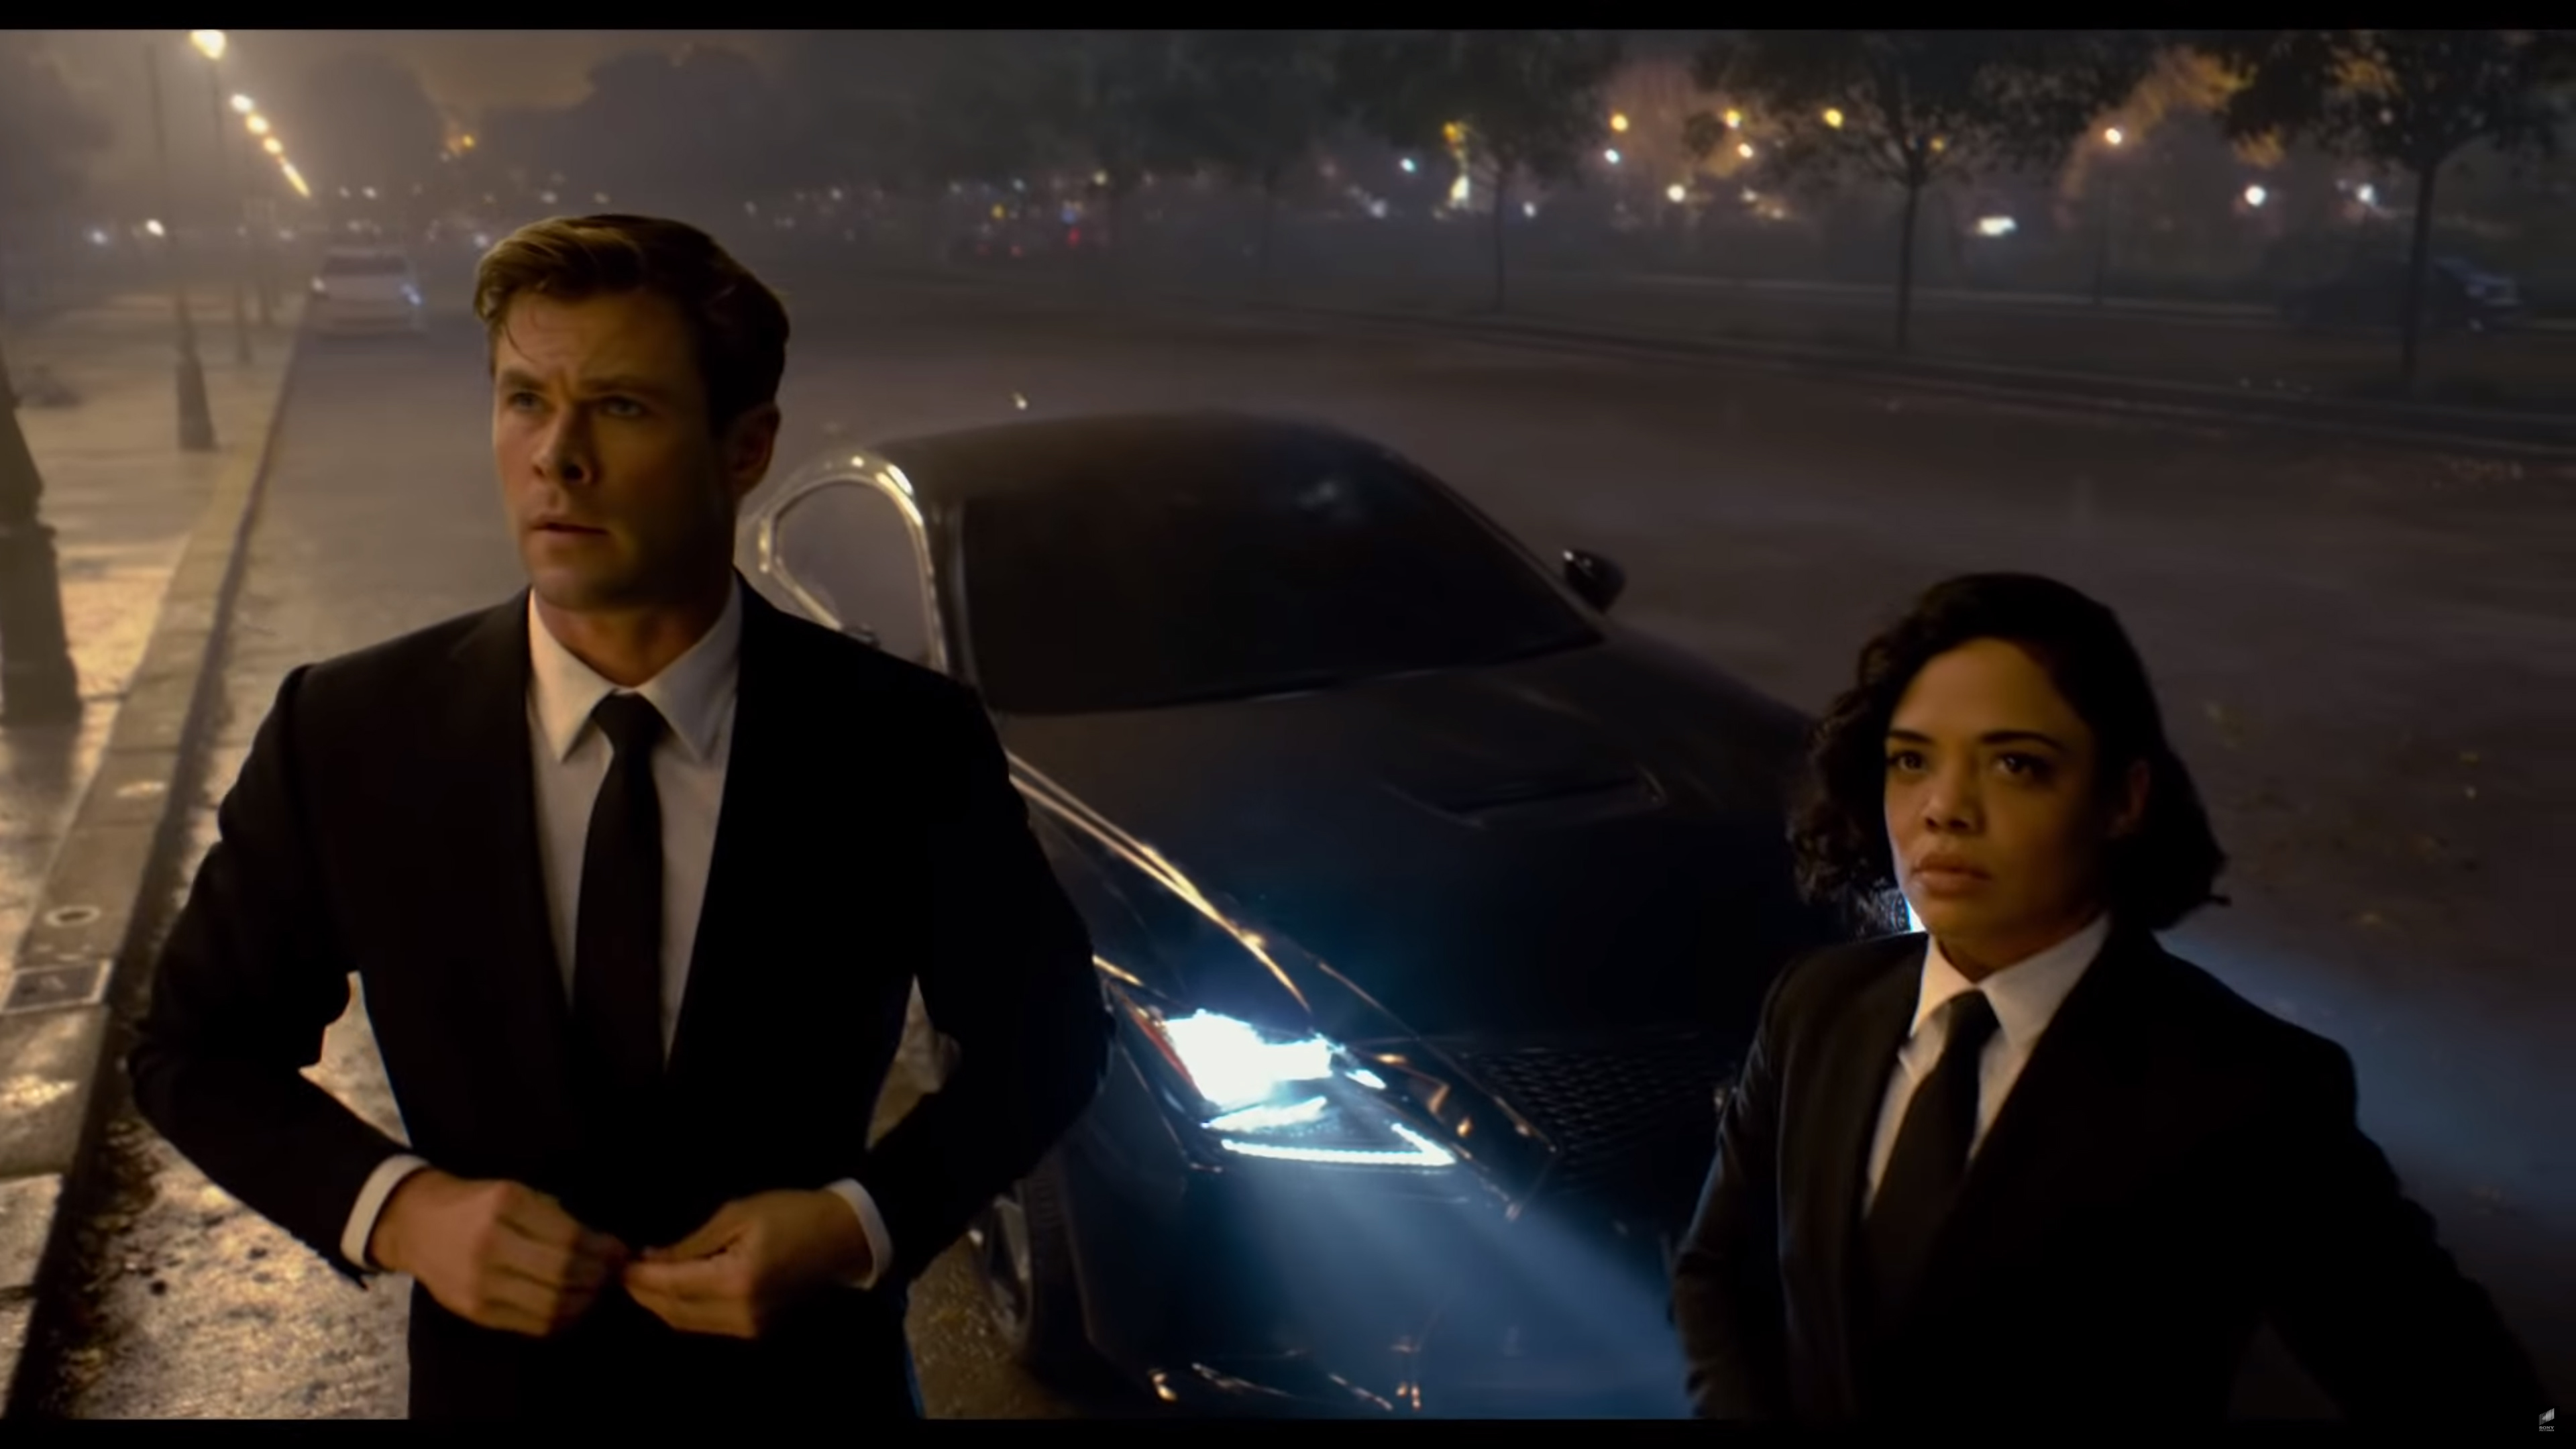 4db96b01f36 Men In Black International Gives the Lexus RC F and Jaguar XJ6 Some  Much-Needed Screen Time